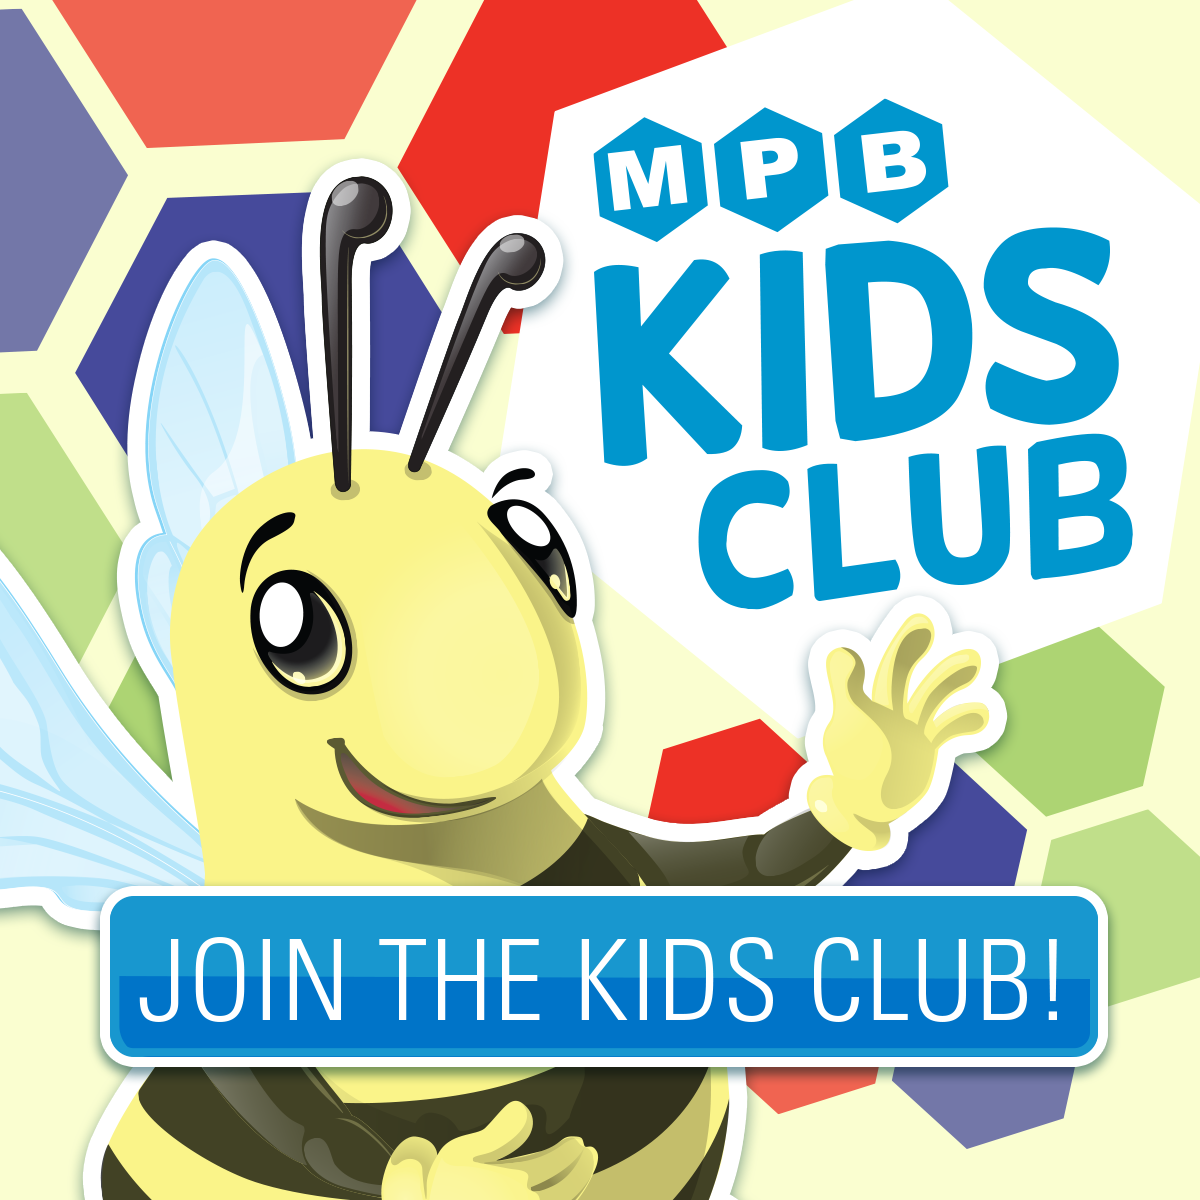 Join the MPB Kids Club